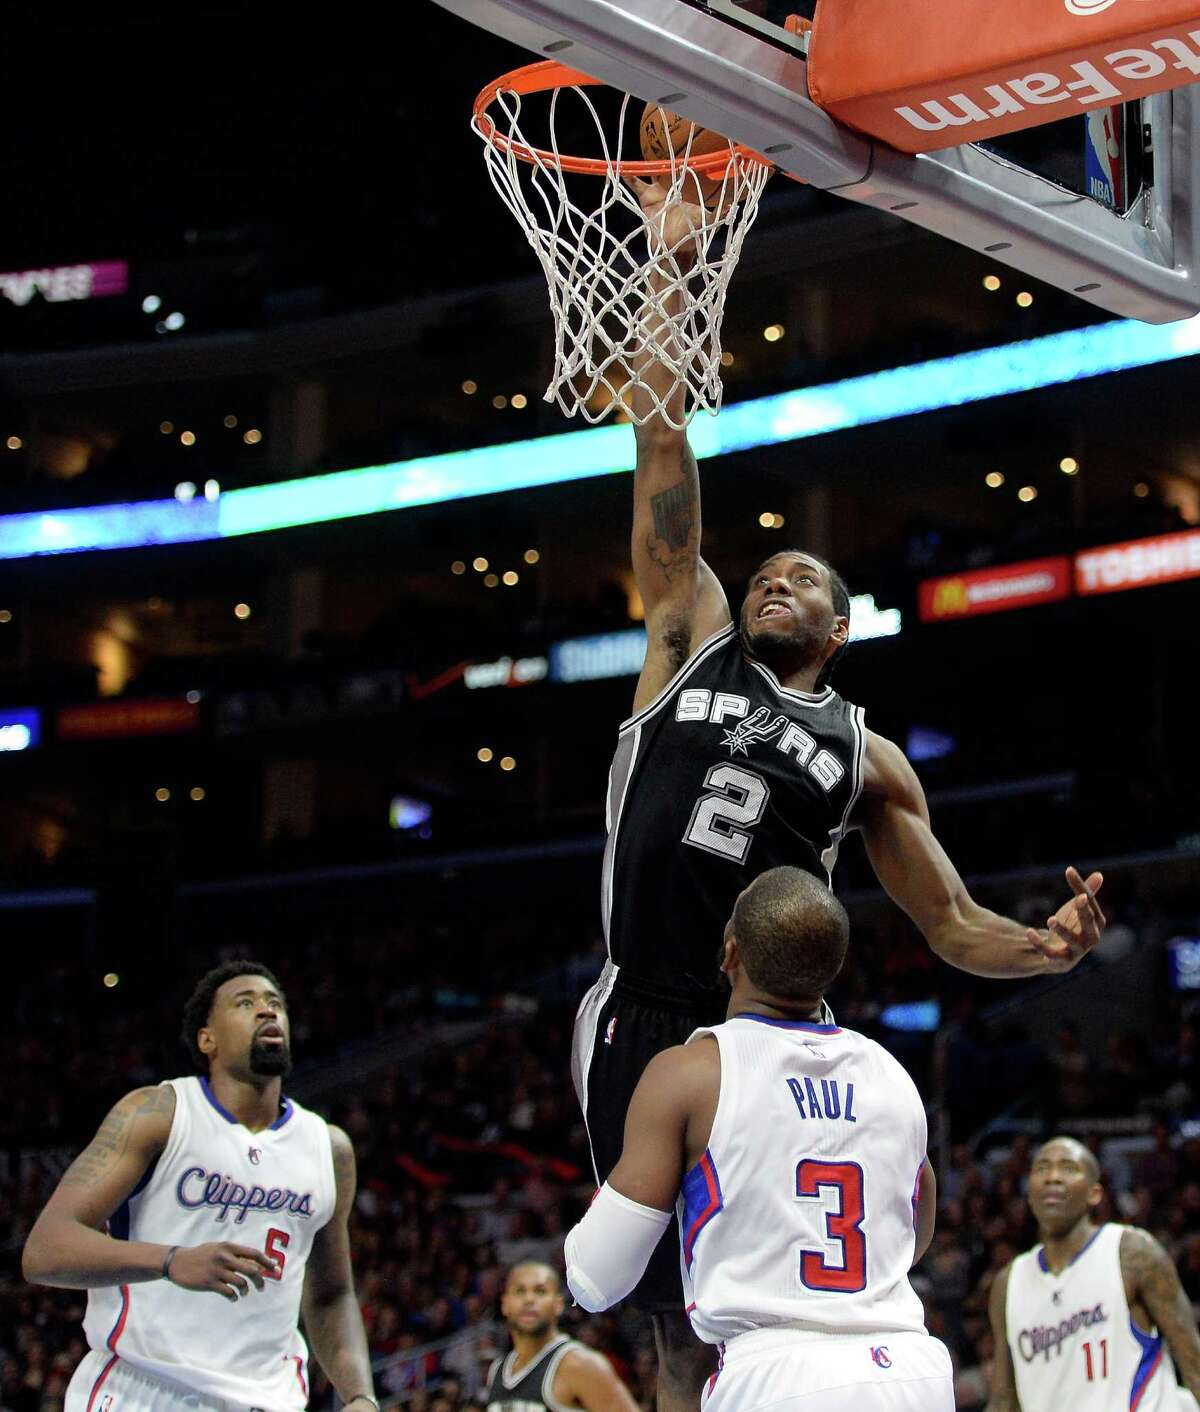 LOS ANGELES, CA - FEBRUARY 19: Kawhi Leonard #2 of the San Antonio Spurs misses a layup in front of Chris Paul #3 and DeAndre Jordan #6 during a 119-115 Clipper win at Staples Center on February 19, 2015 in Los Angeles, California. NOTE TO USER: User expressly acknowledges and agrees that, by downloading and or using this Photograph, user is consenting to the terms and condition of the Getty Images License Agreement. (Photo by Harry How/Getty Images)